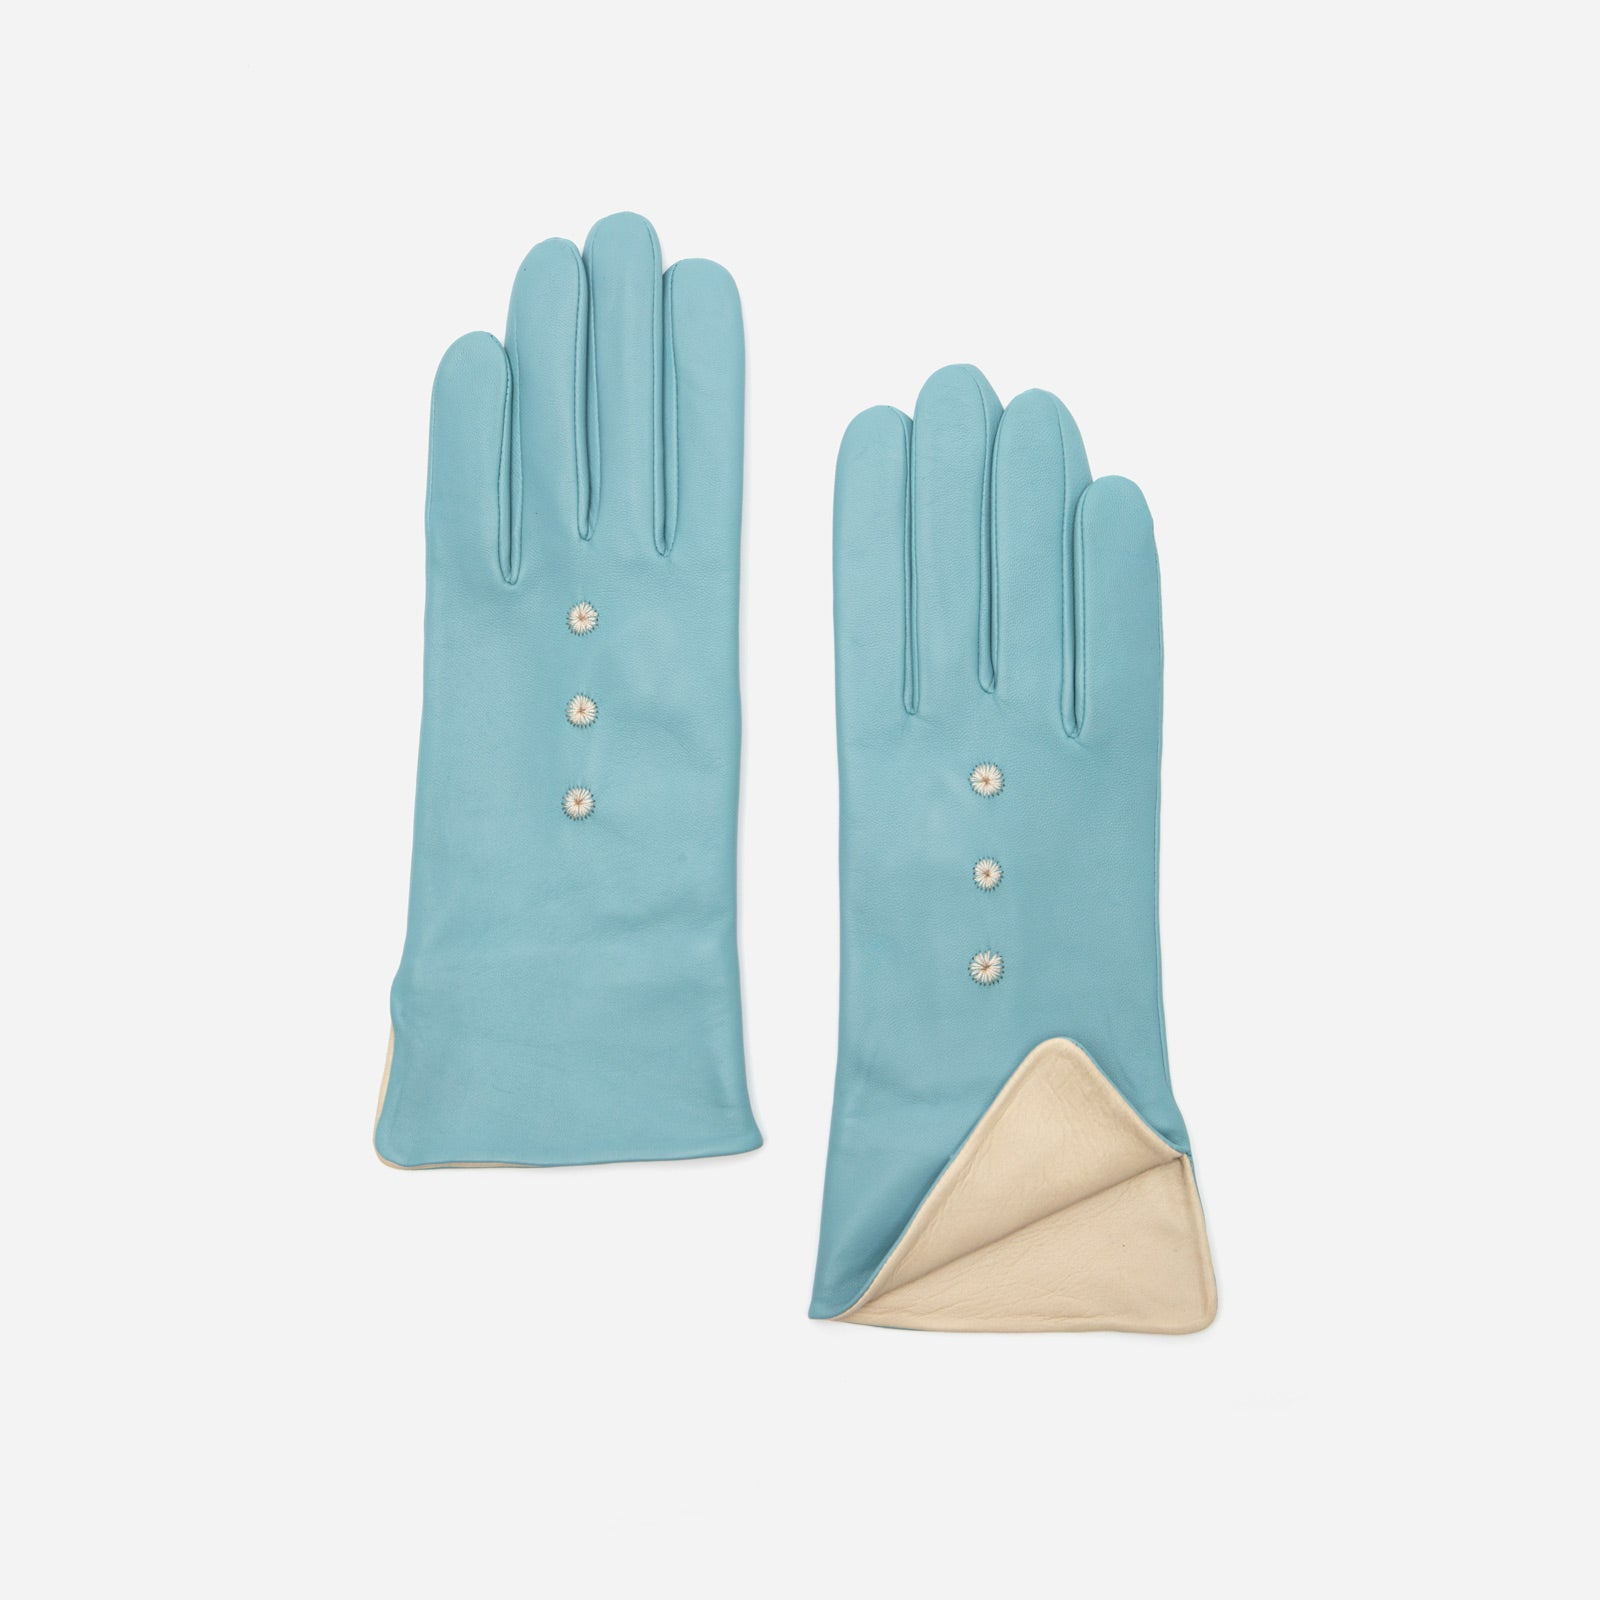 Luisa Asterisk Glove Leather Light Blue